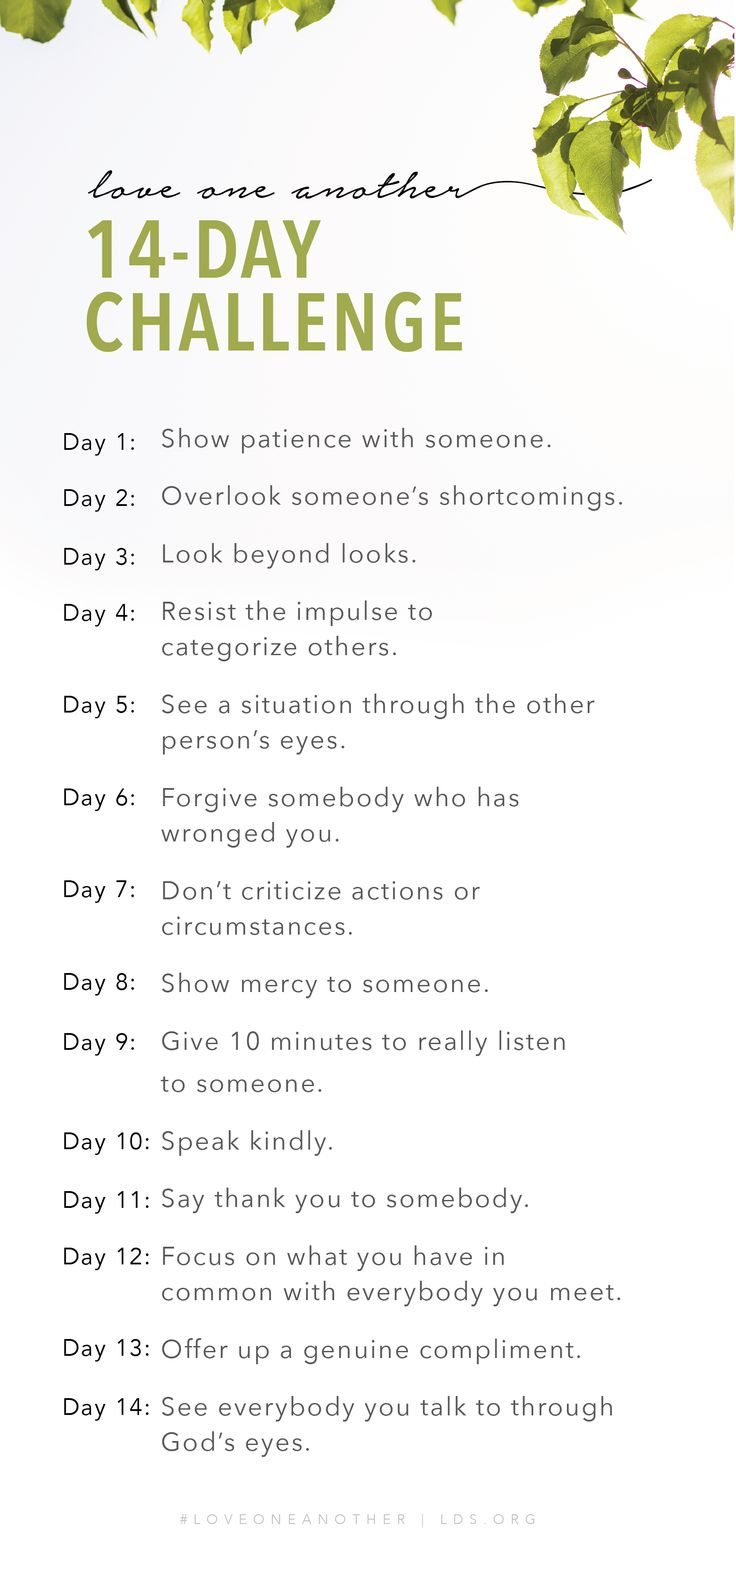 14 Day Challenge to Love One Another #LDS                                                                                                                                                      More